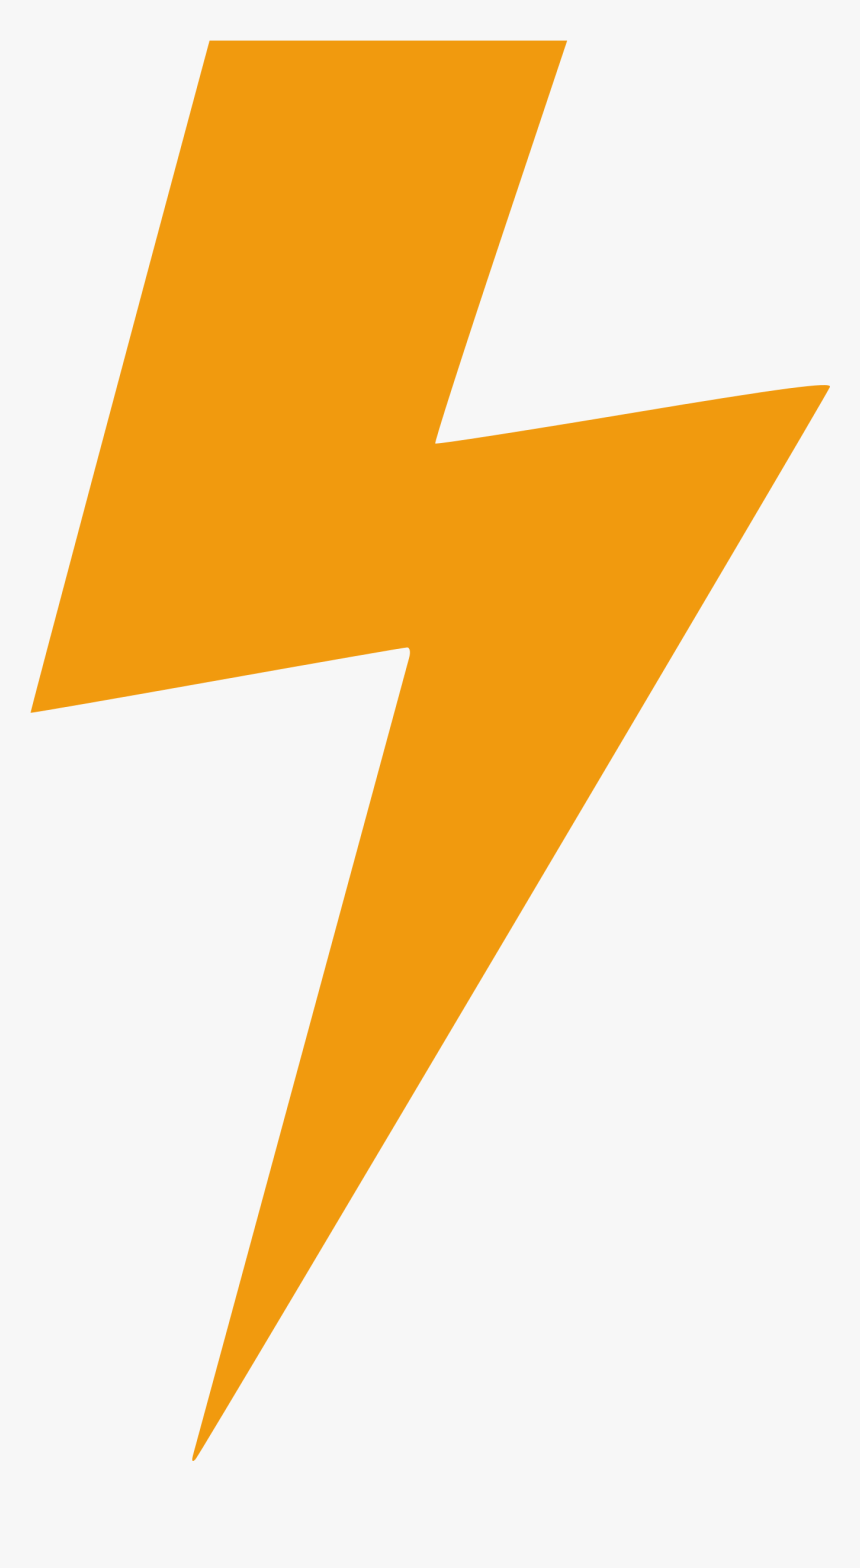 Clip Art Free Thunder Icon Download - Lightning Icon .png, Transparent Png, Free Download